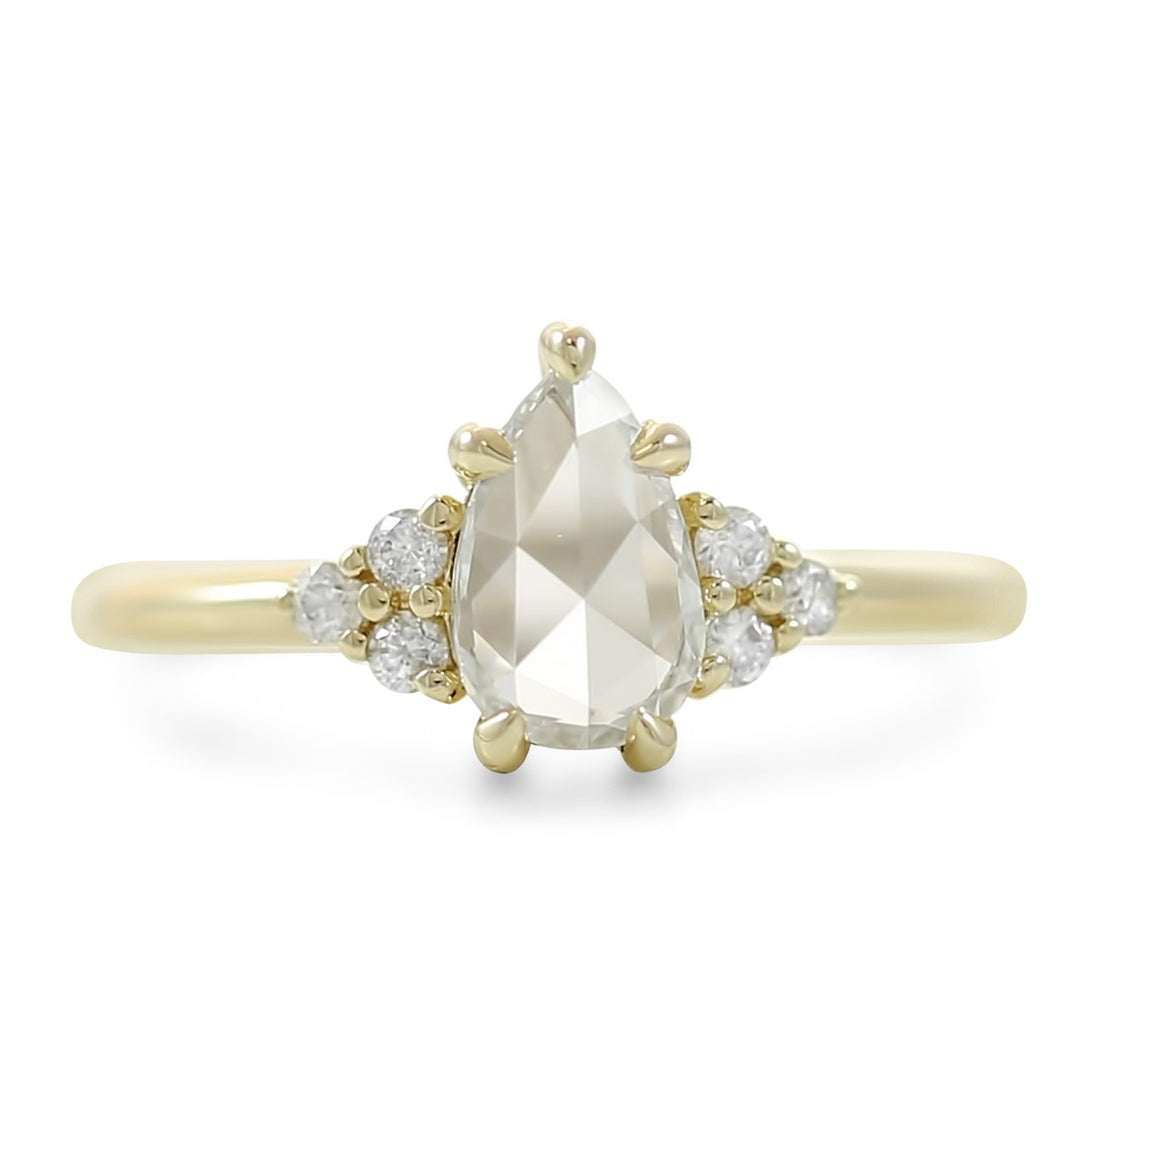 14k yellow gold rose cut pear diamond engagement ring with round diamond cluster side stones